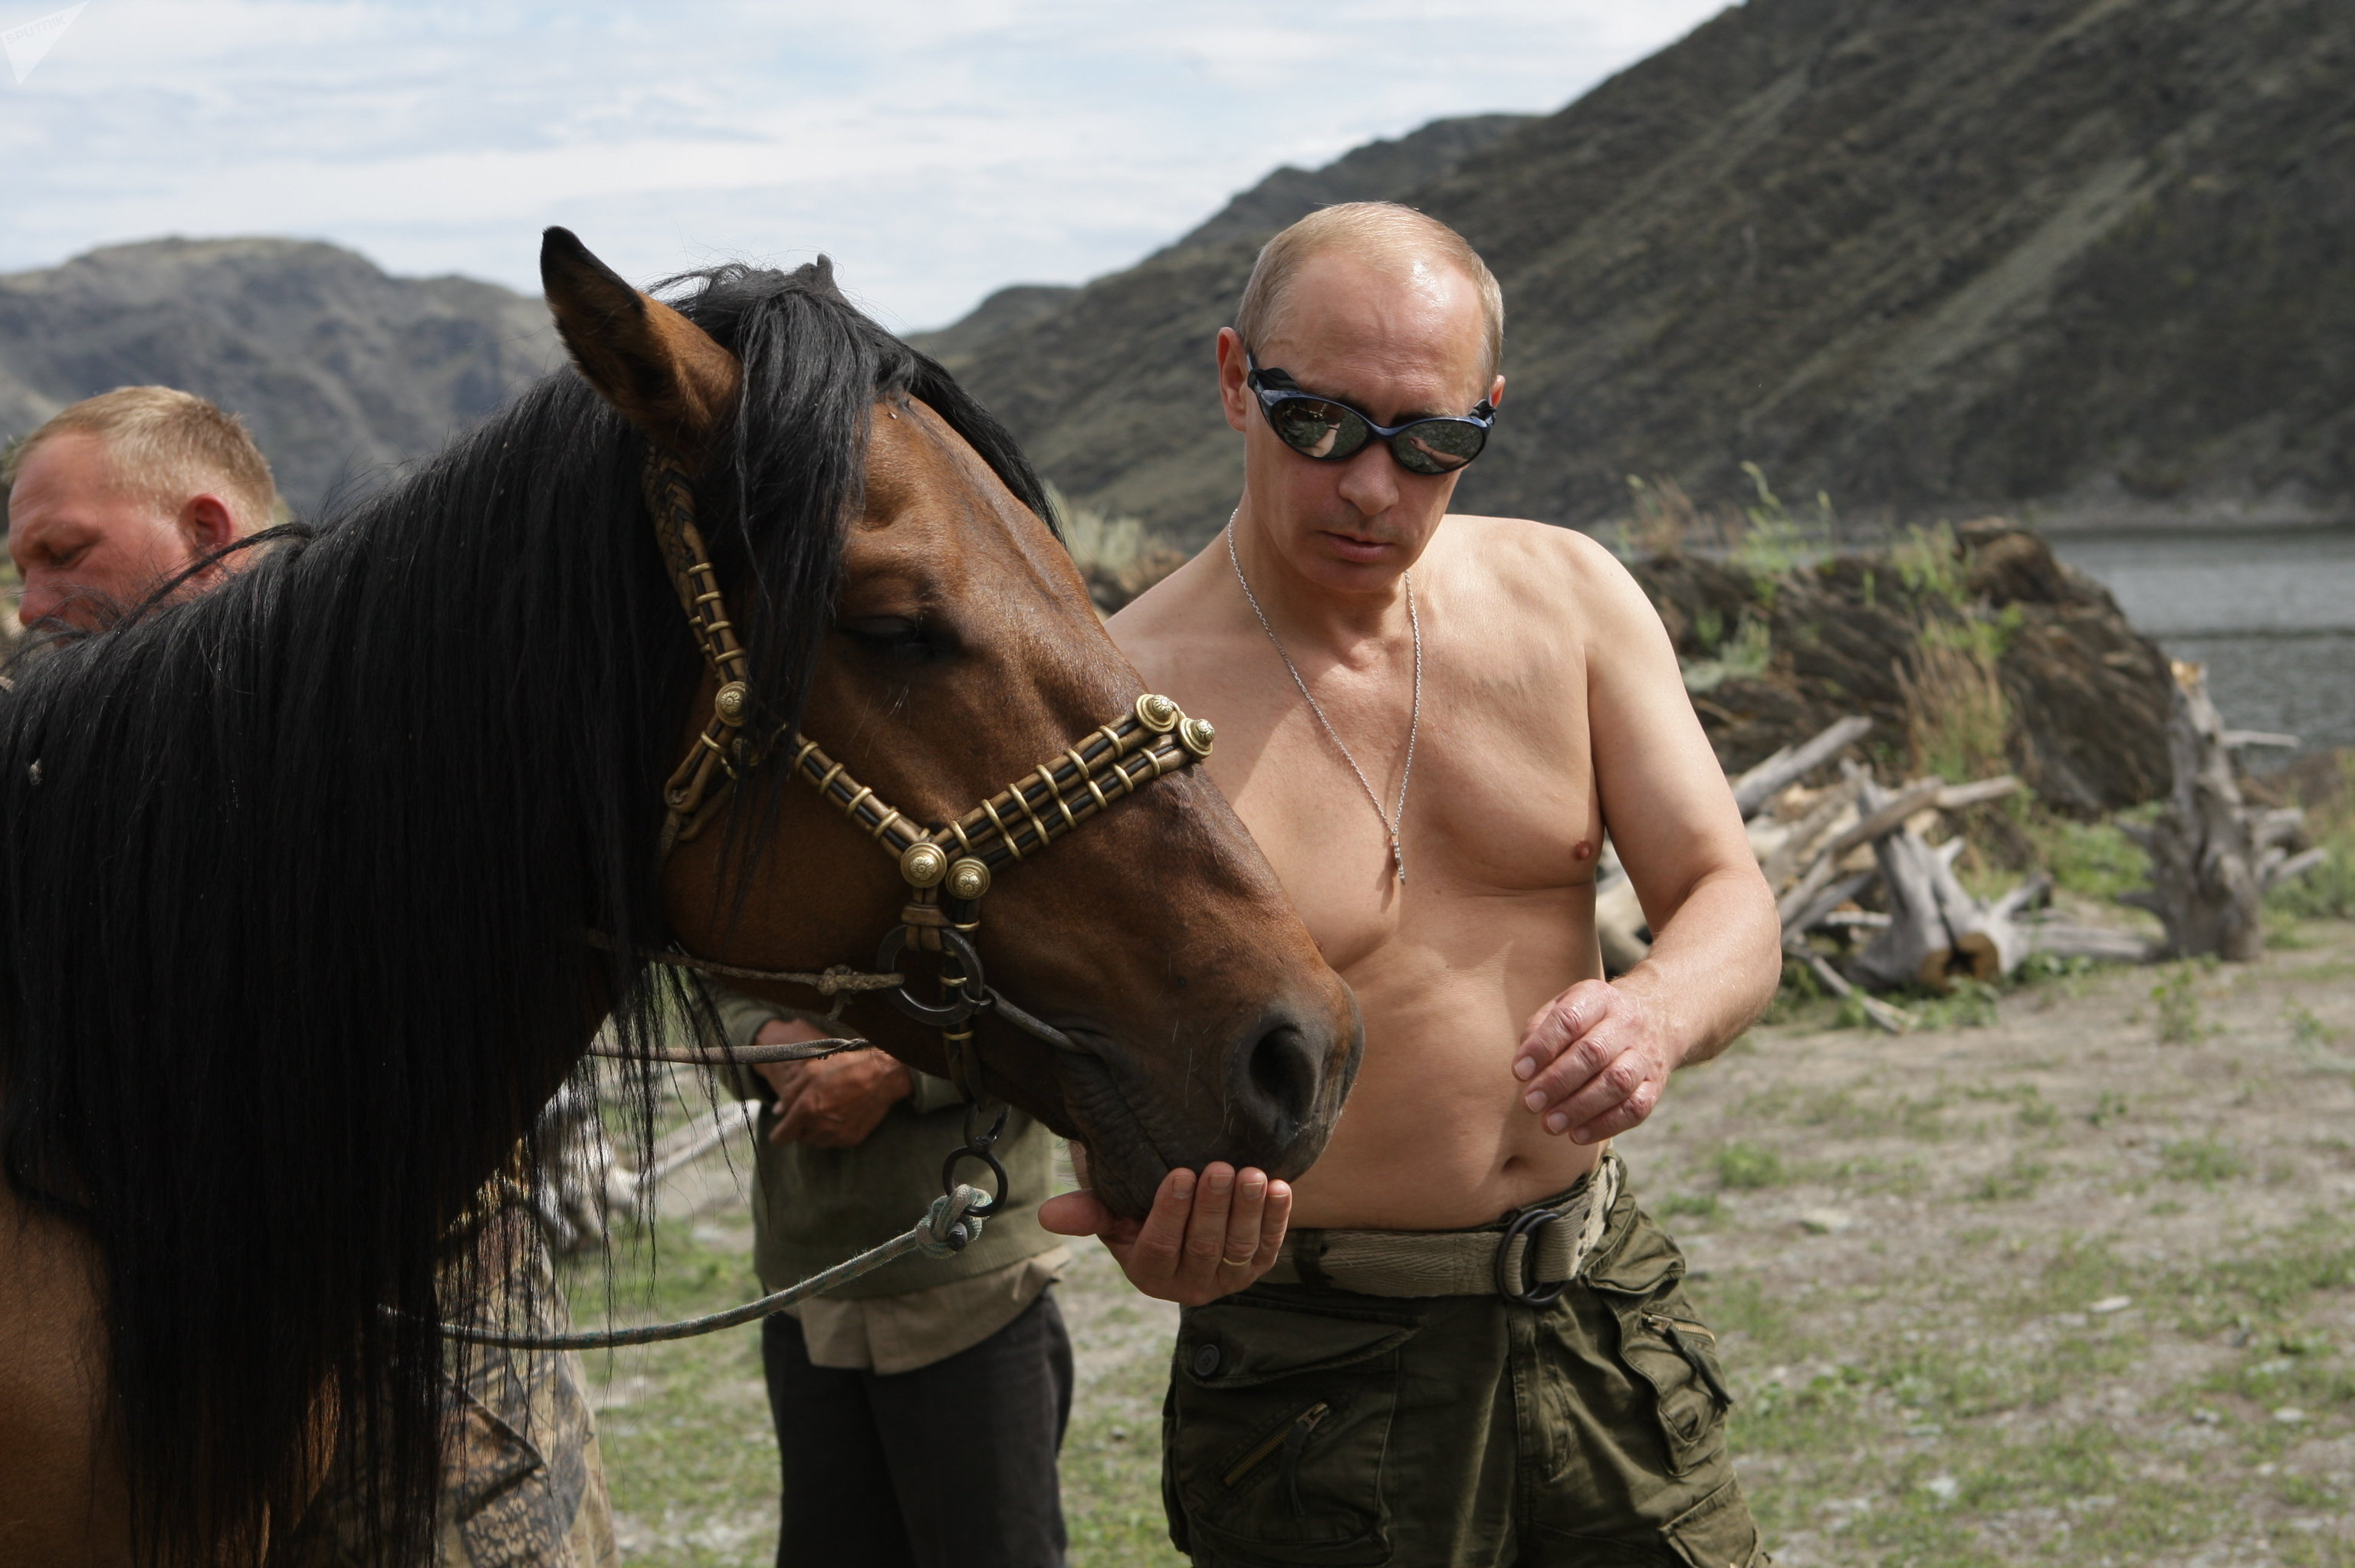 Vladimir Putin on vacation in Tyva Republic